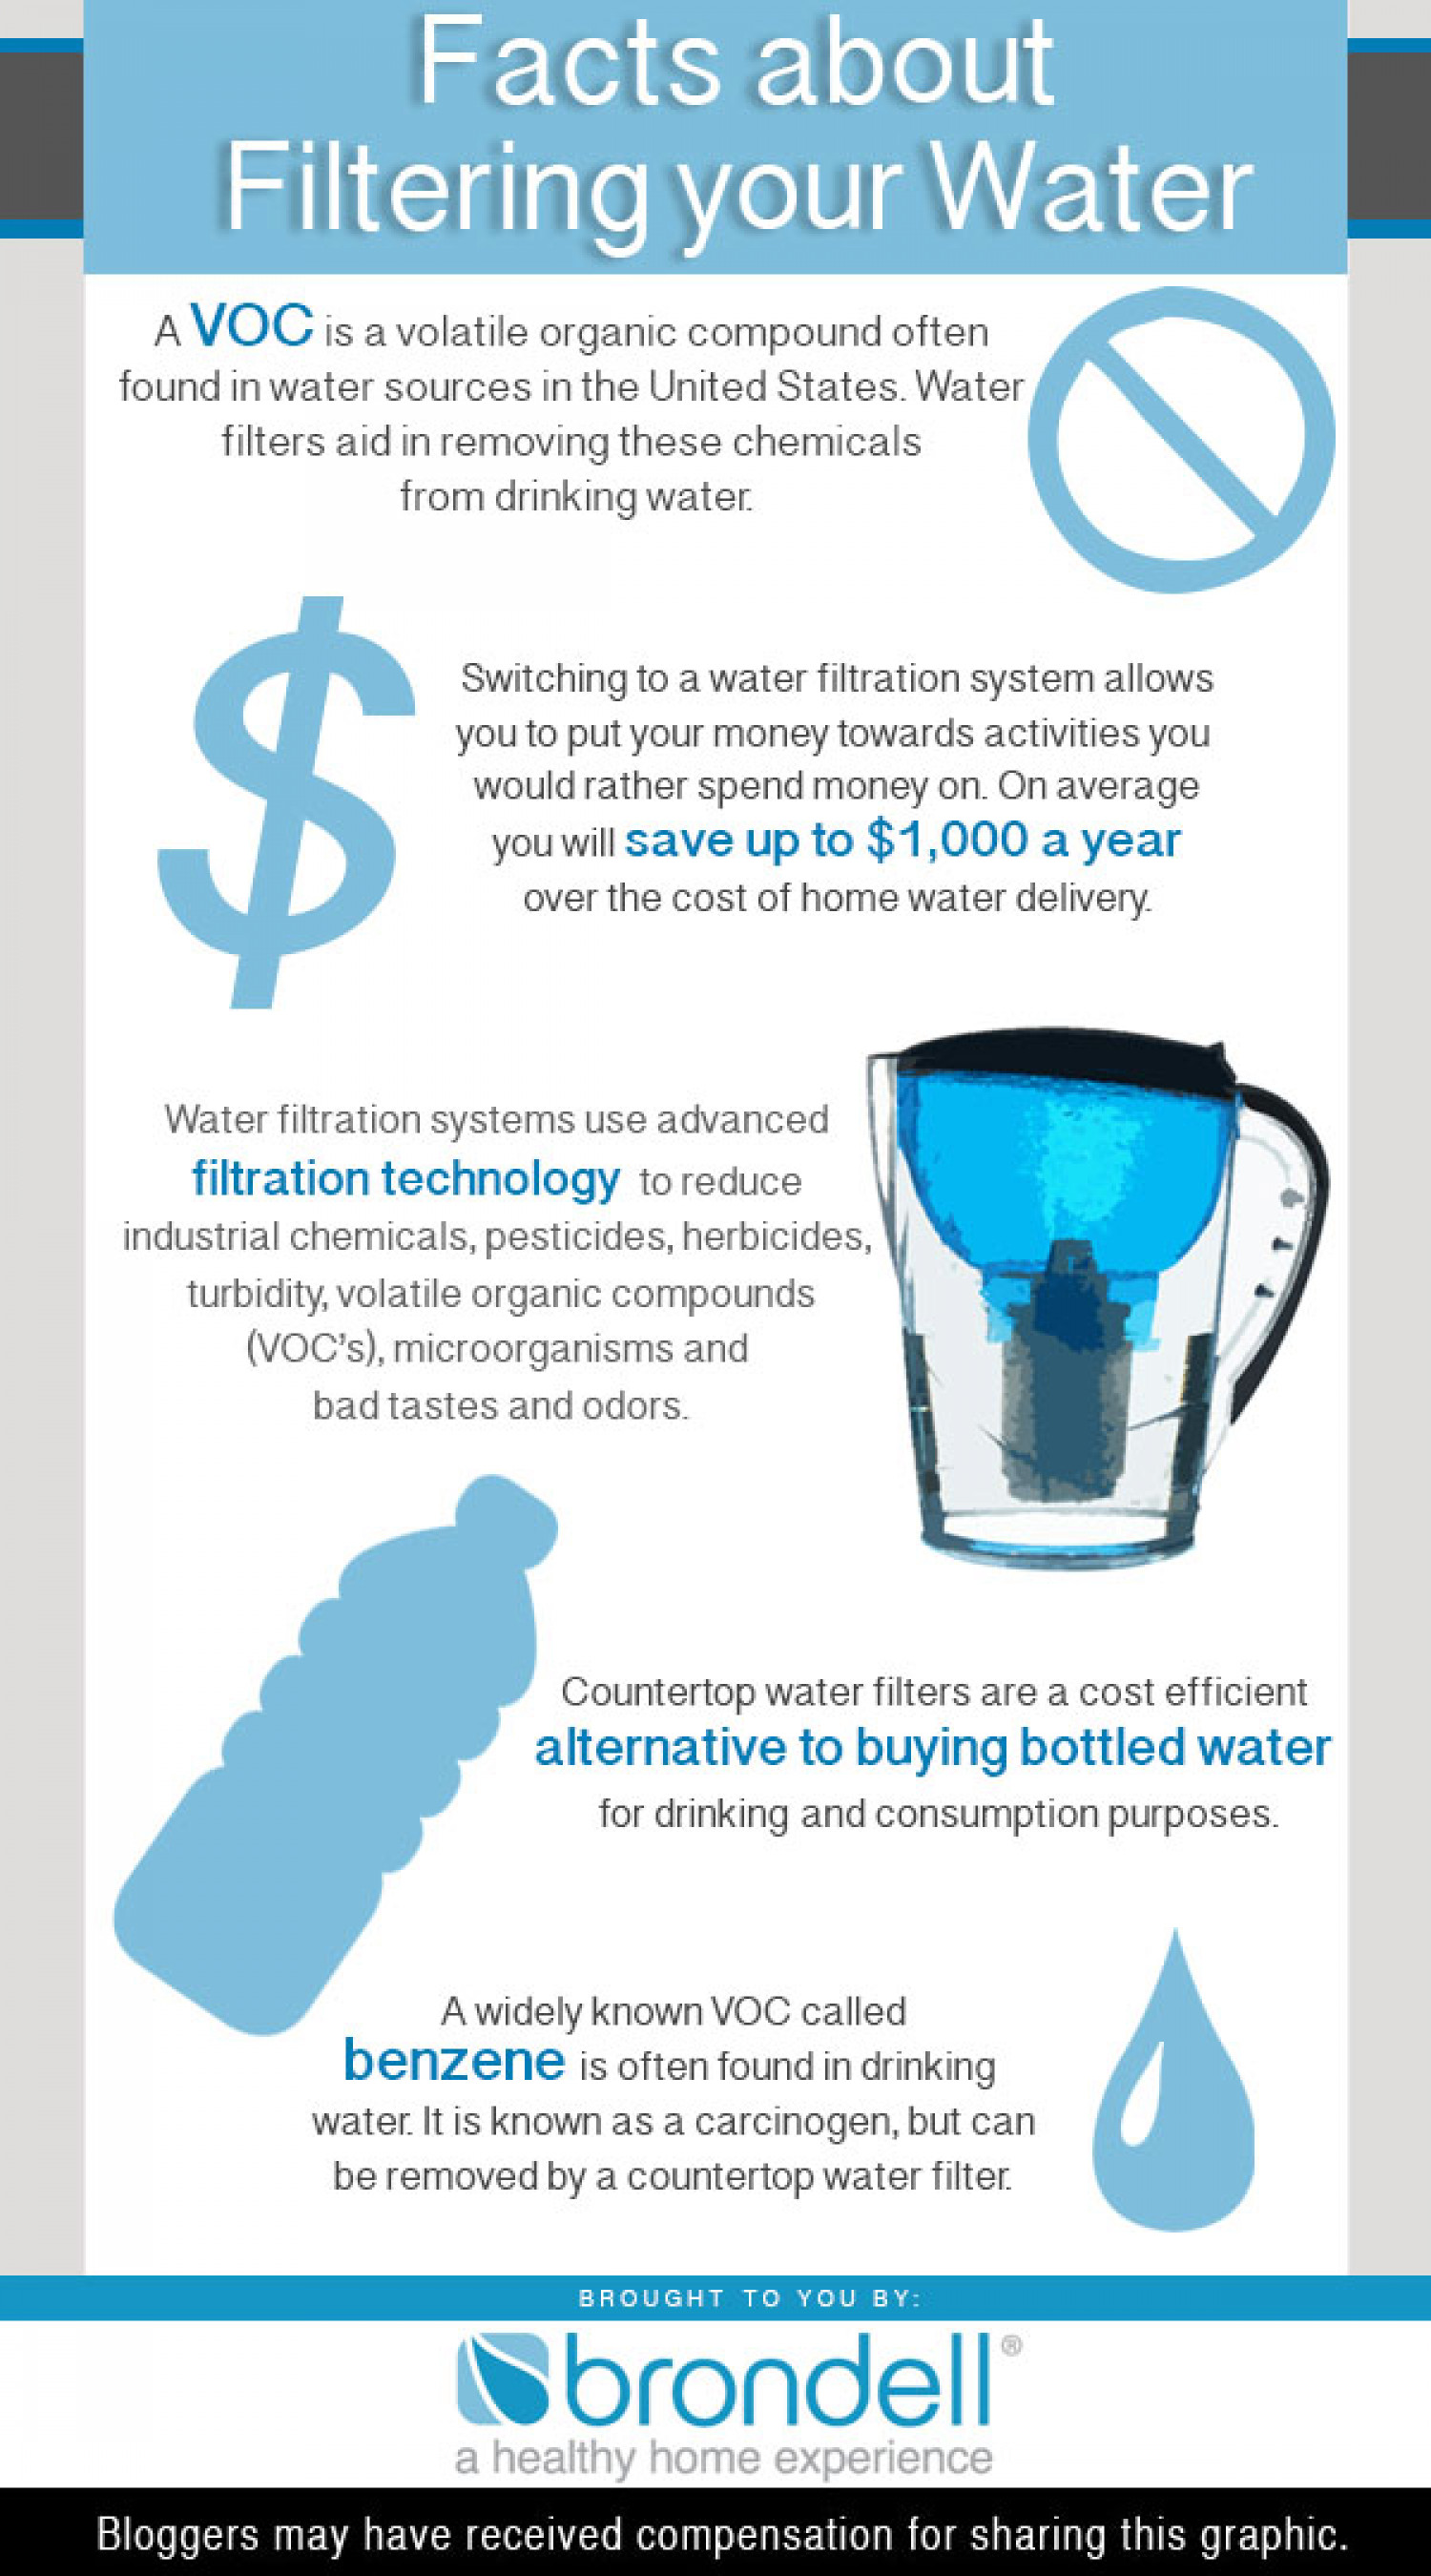 Facts About Filtering Your Water | Visual.ly